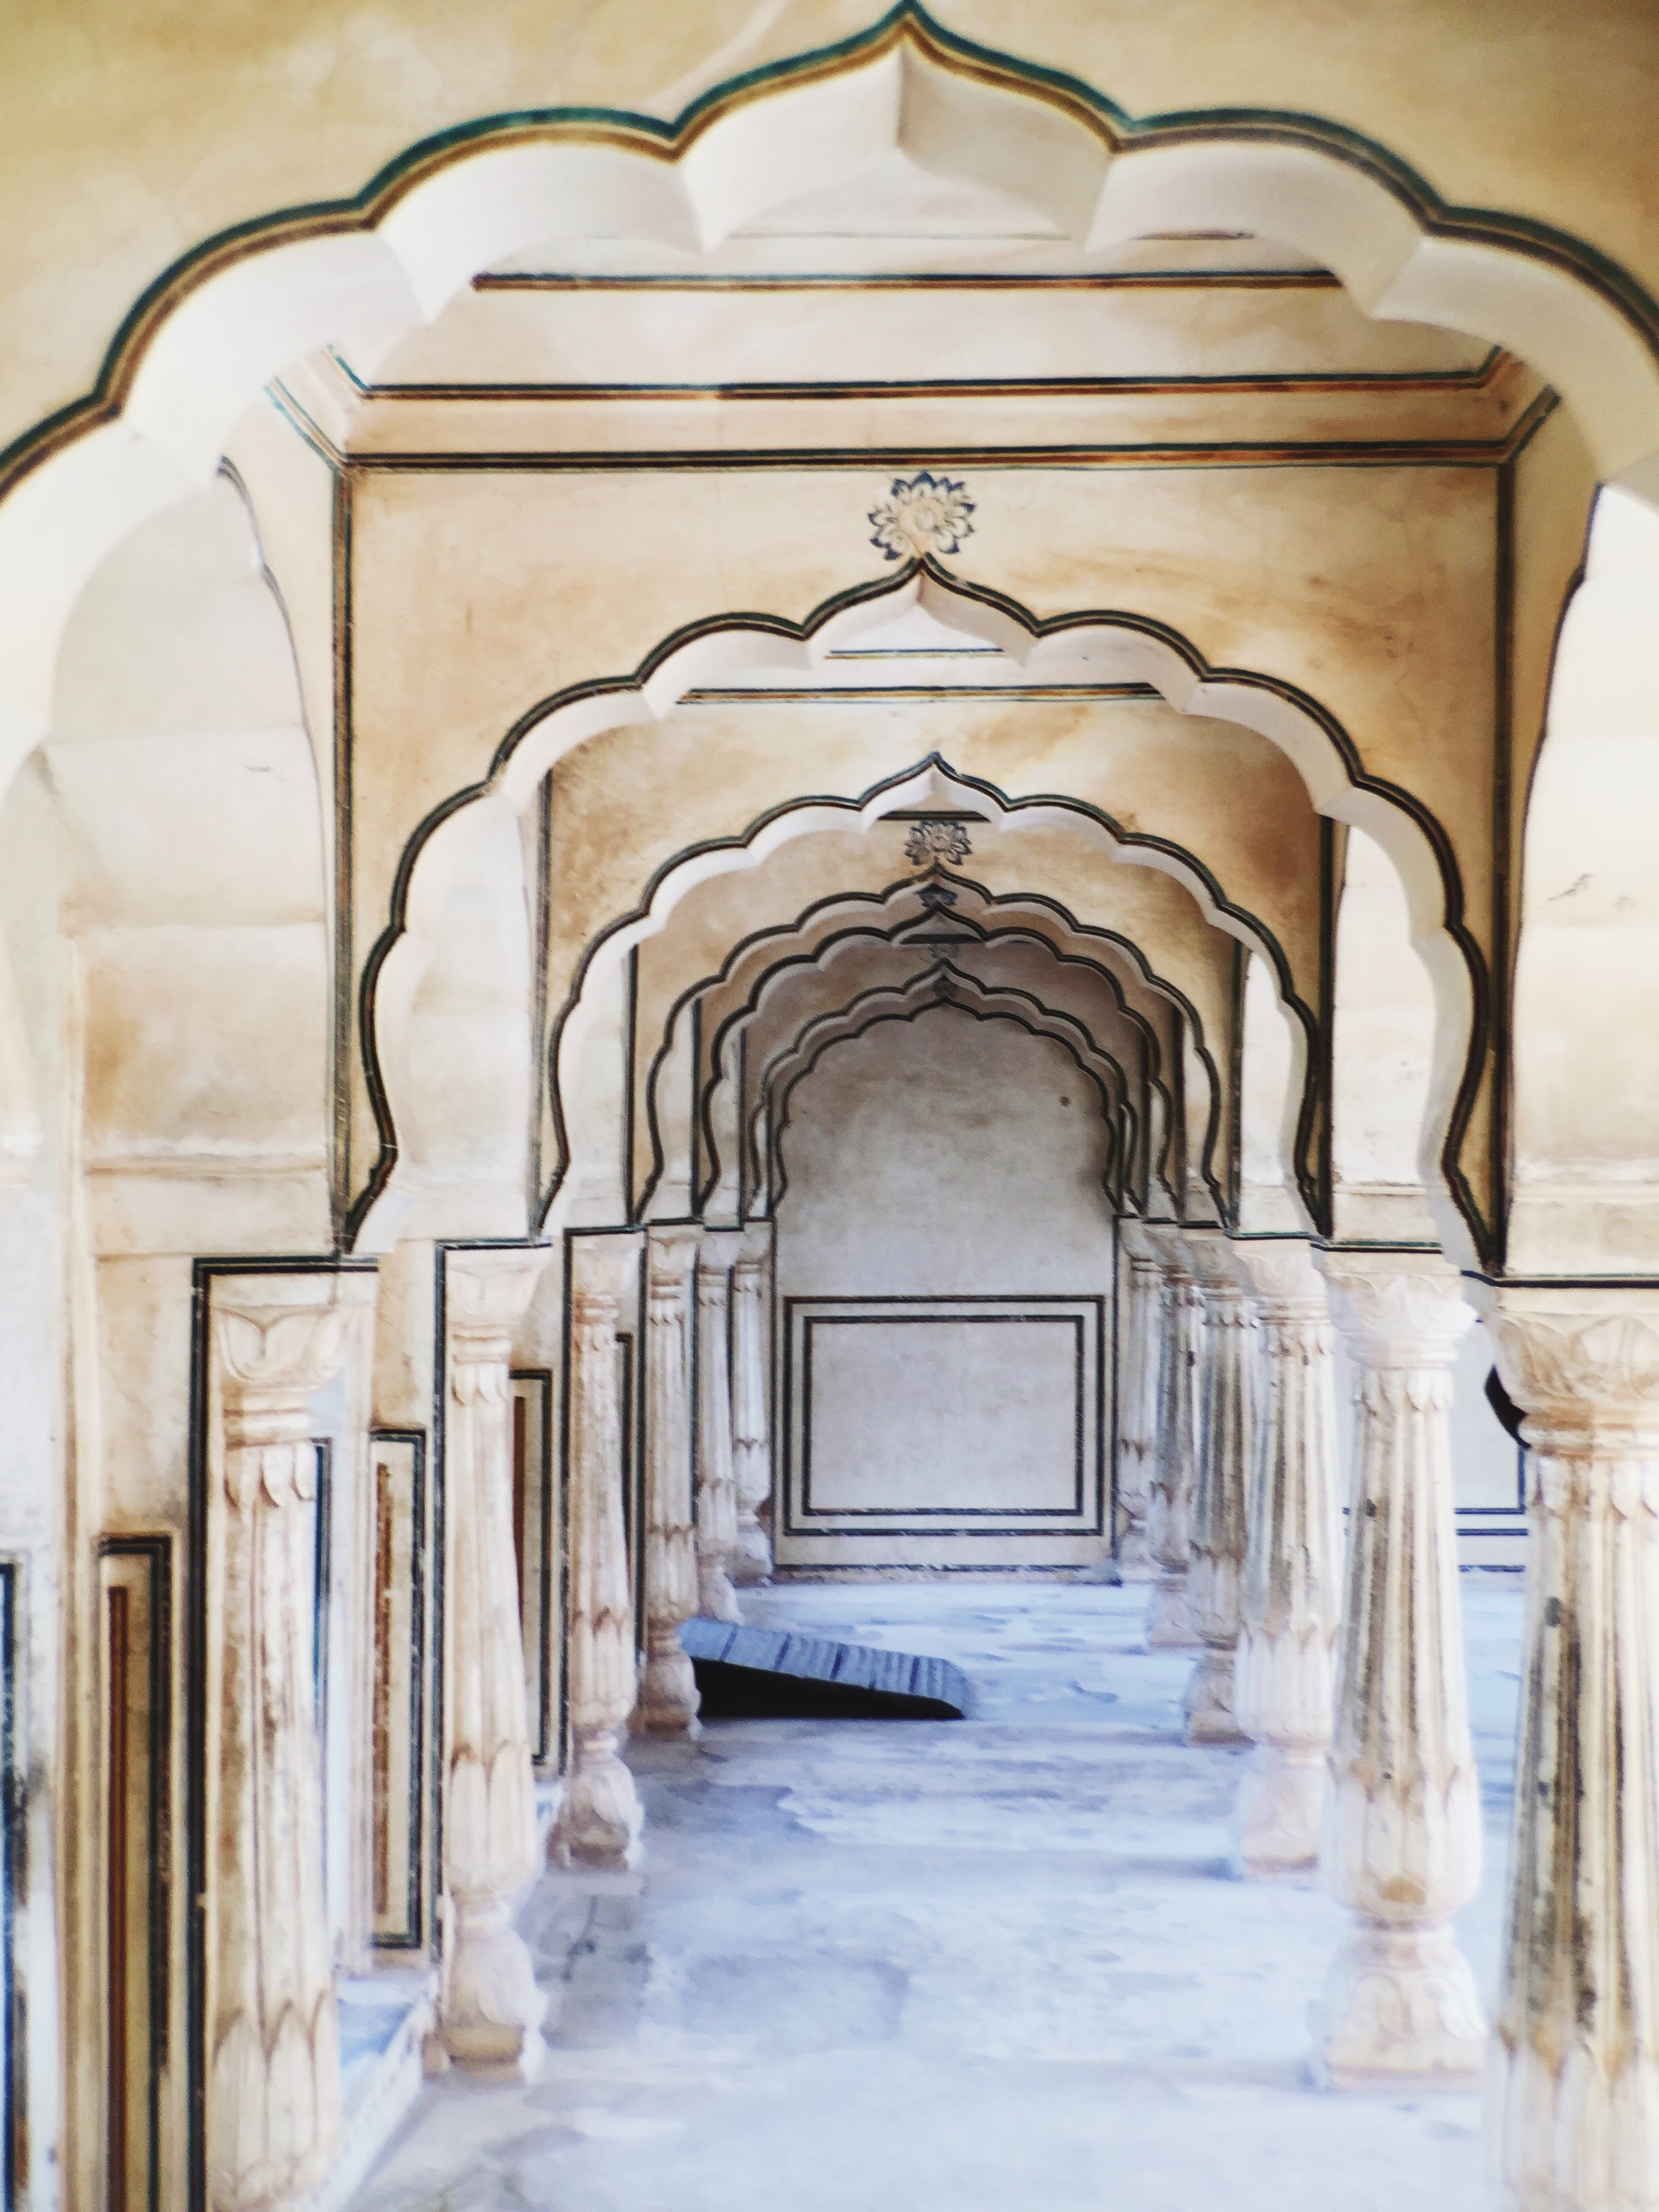 The McHowe World Tour - Amber Fort, Jaipur, India